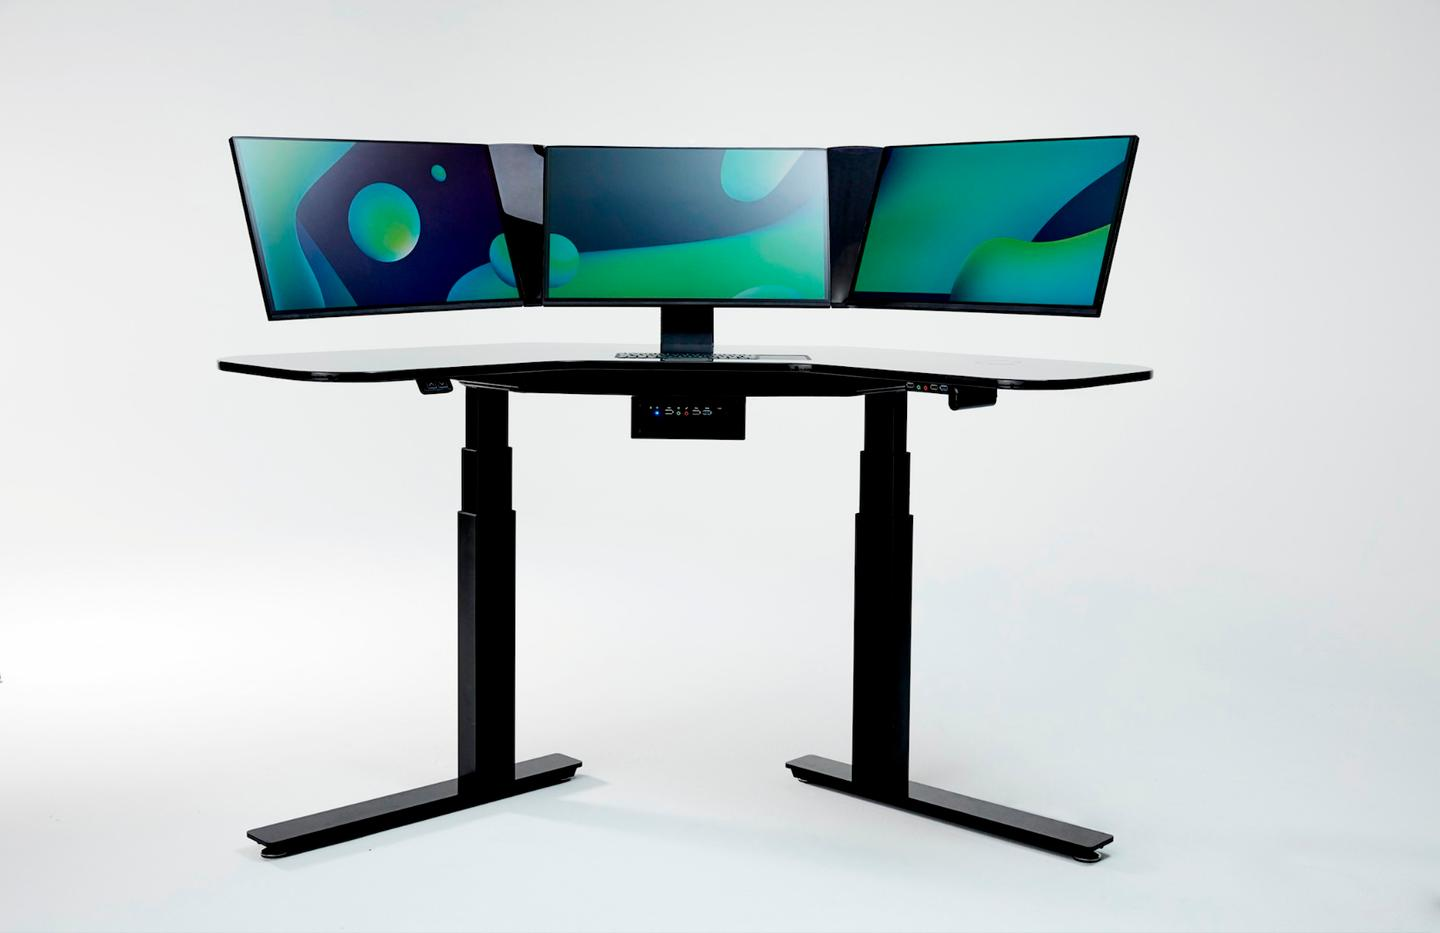 Cemtrex's SmartDesk can be used as a sitting or standing desk